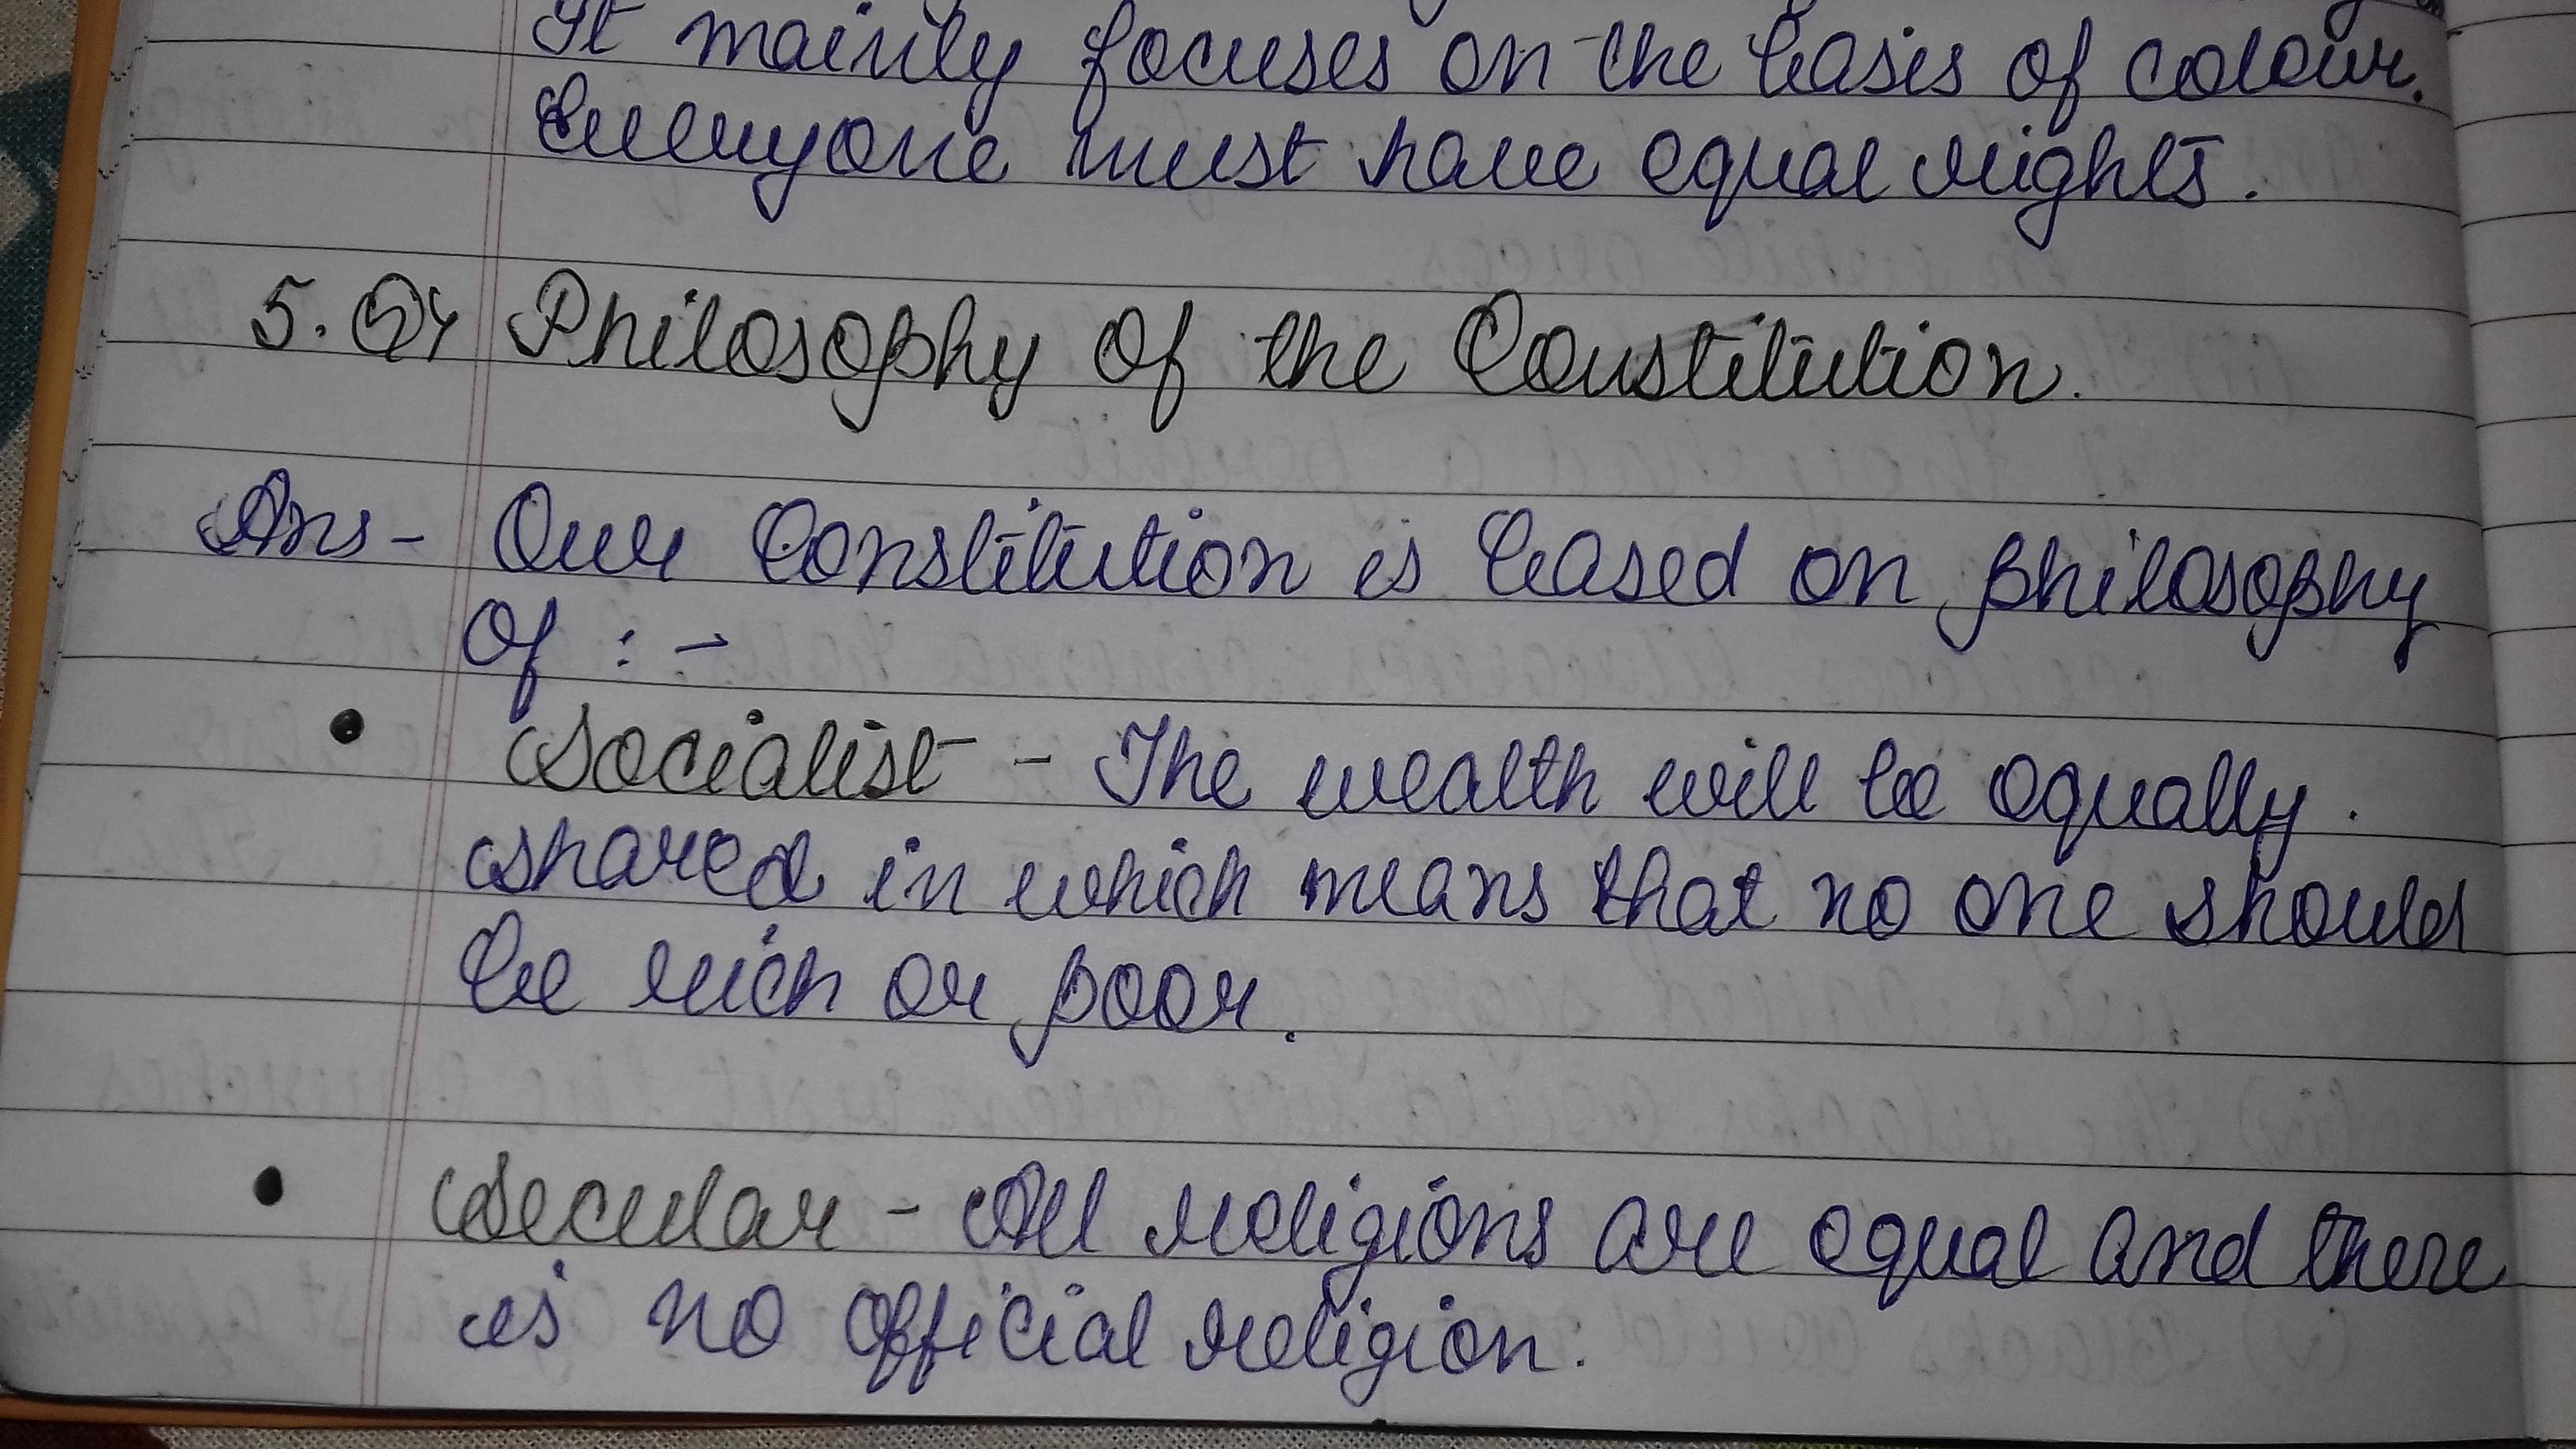 political philosophy Indian constitution - Brainly in